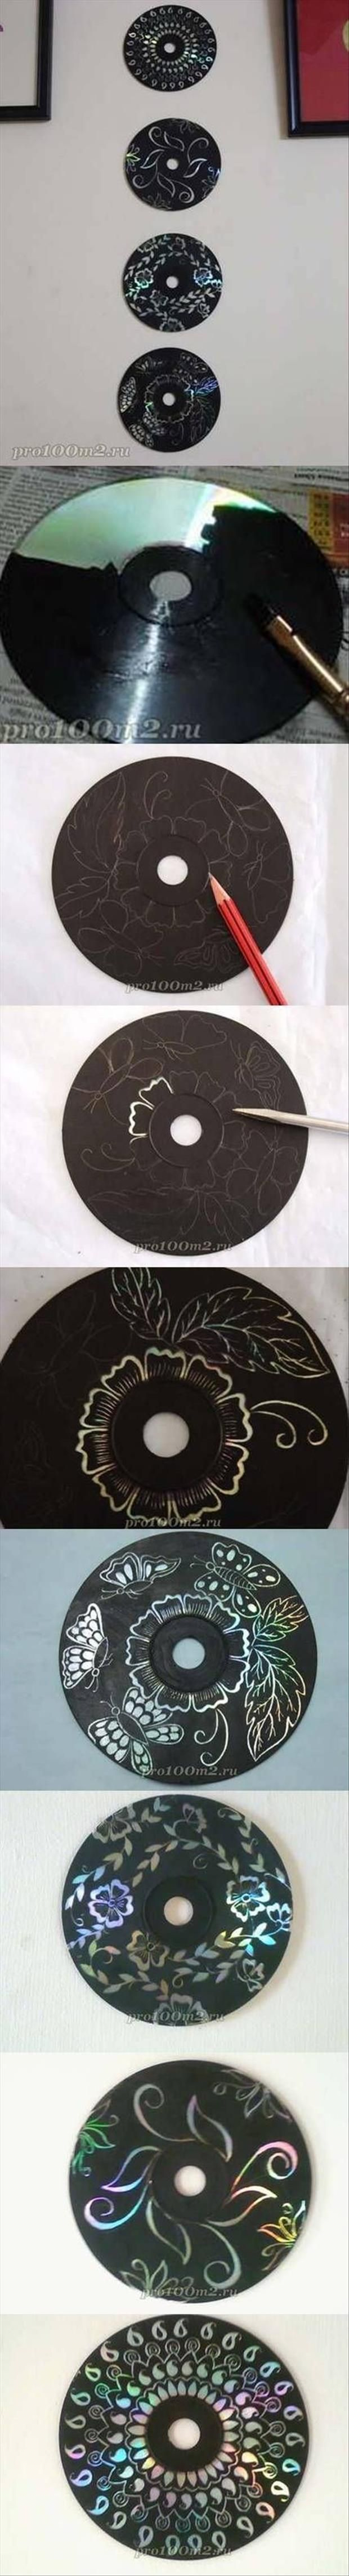 DIY decor idea for when you have those old CDs too scratched up to play. Upcycle it into cute wall art!